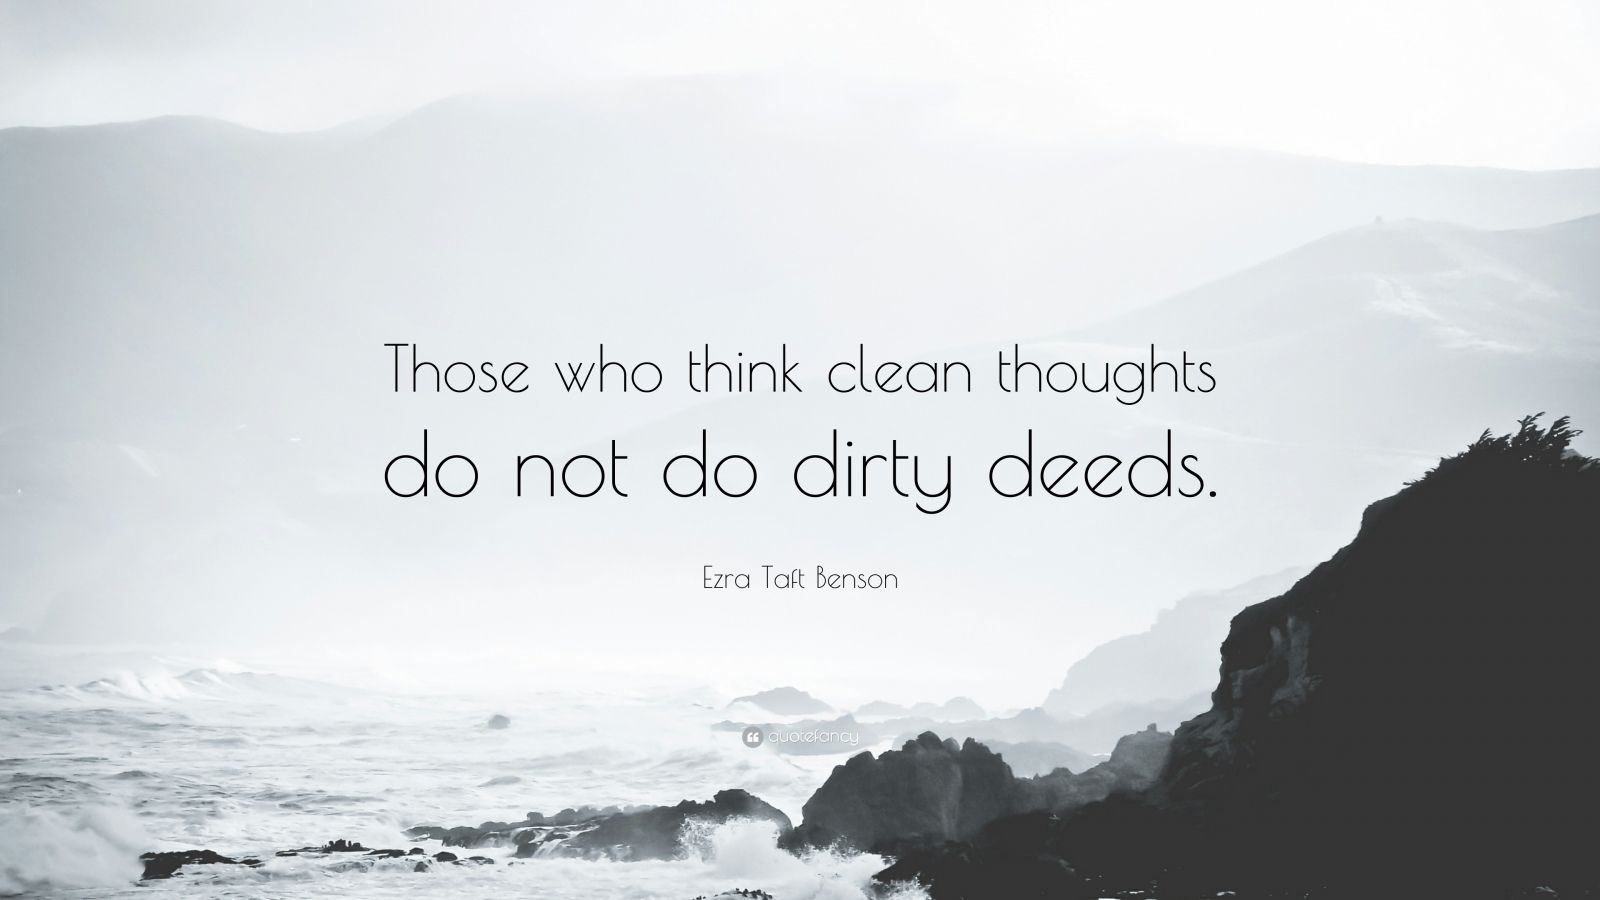 """Ezra Taft Benson Quote: """"Those who think clean thoughts do not do dirty deeds."""""""